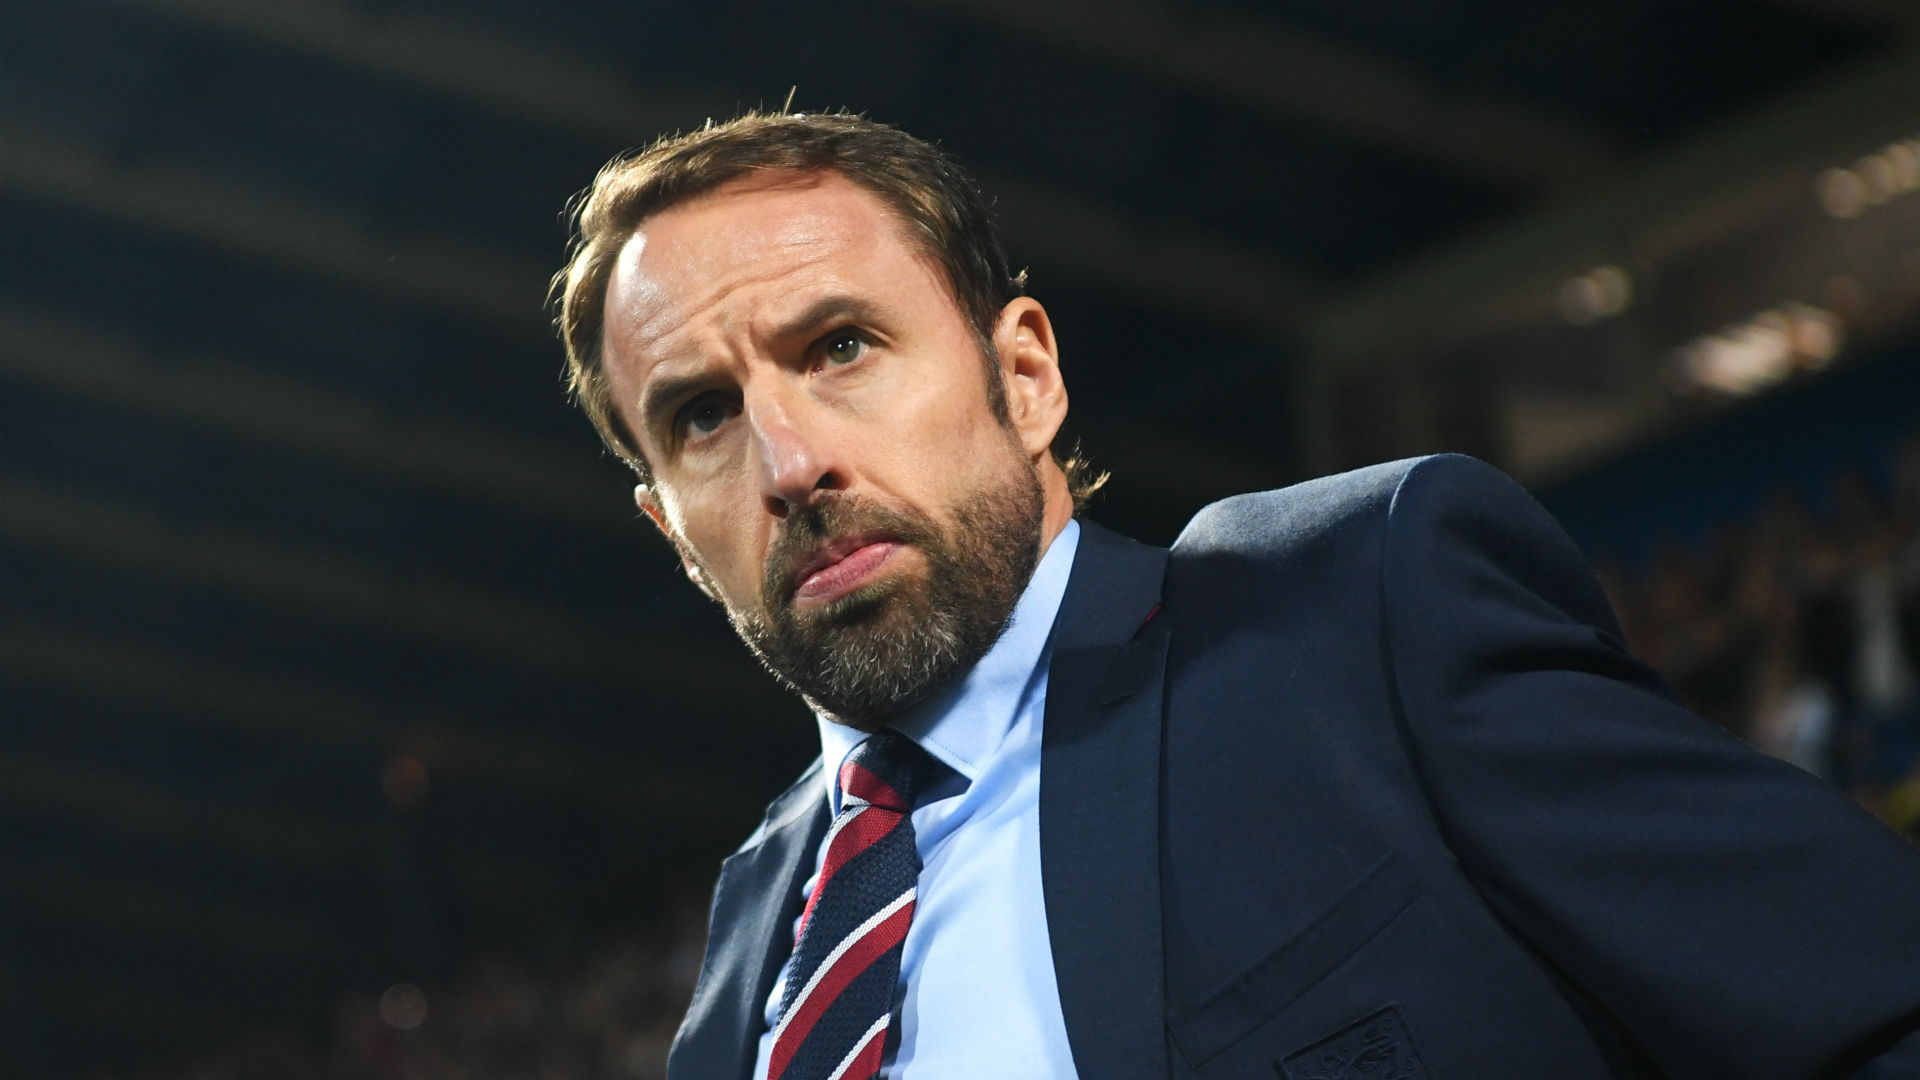 Being close makes England losses hurt more for Southgate